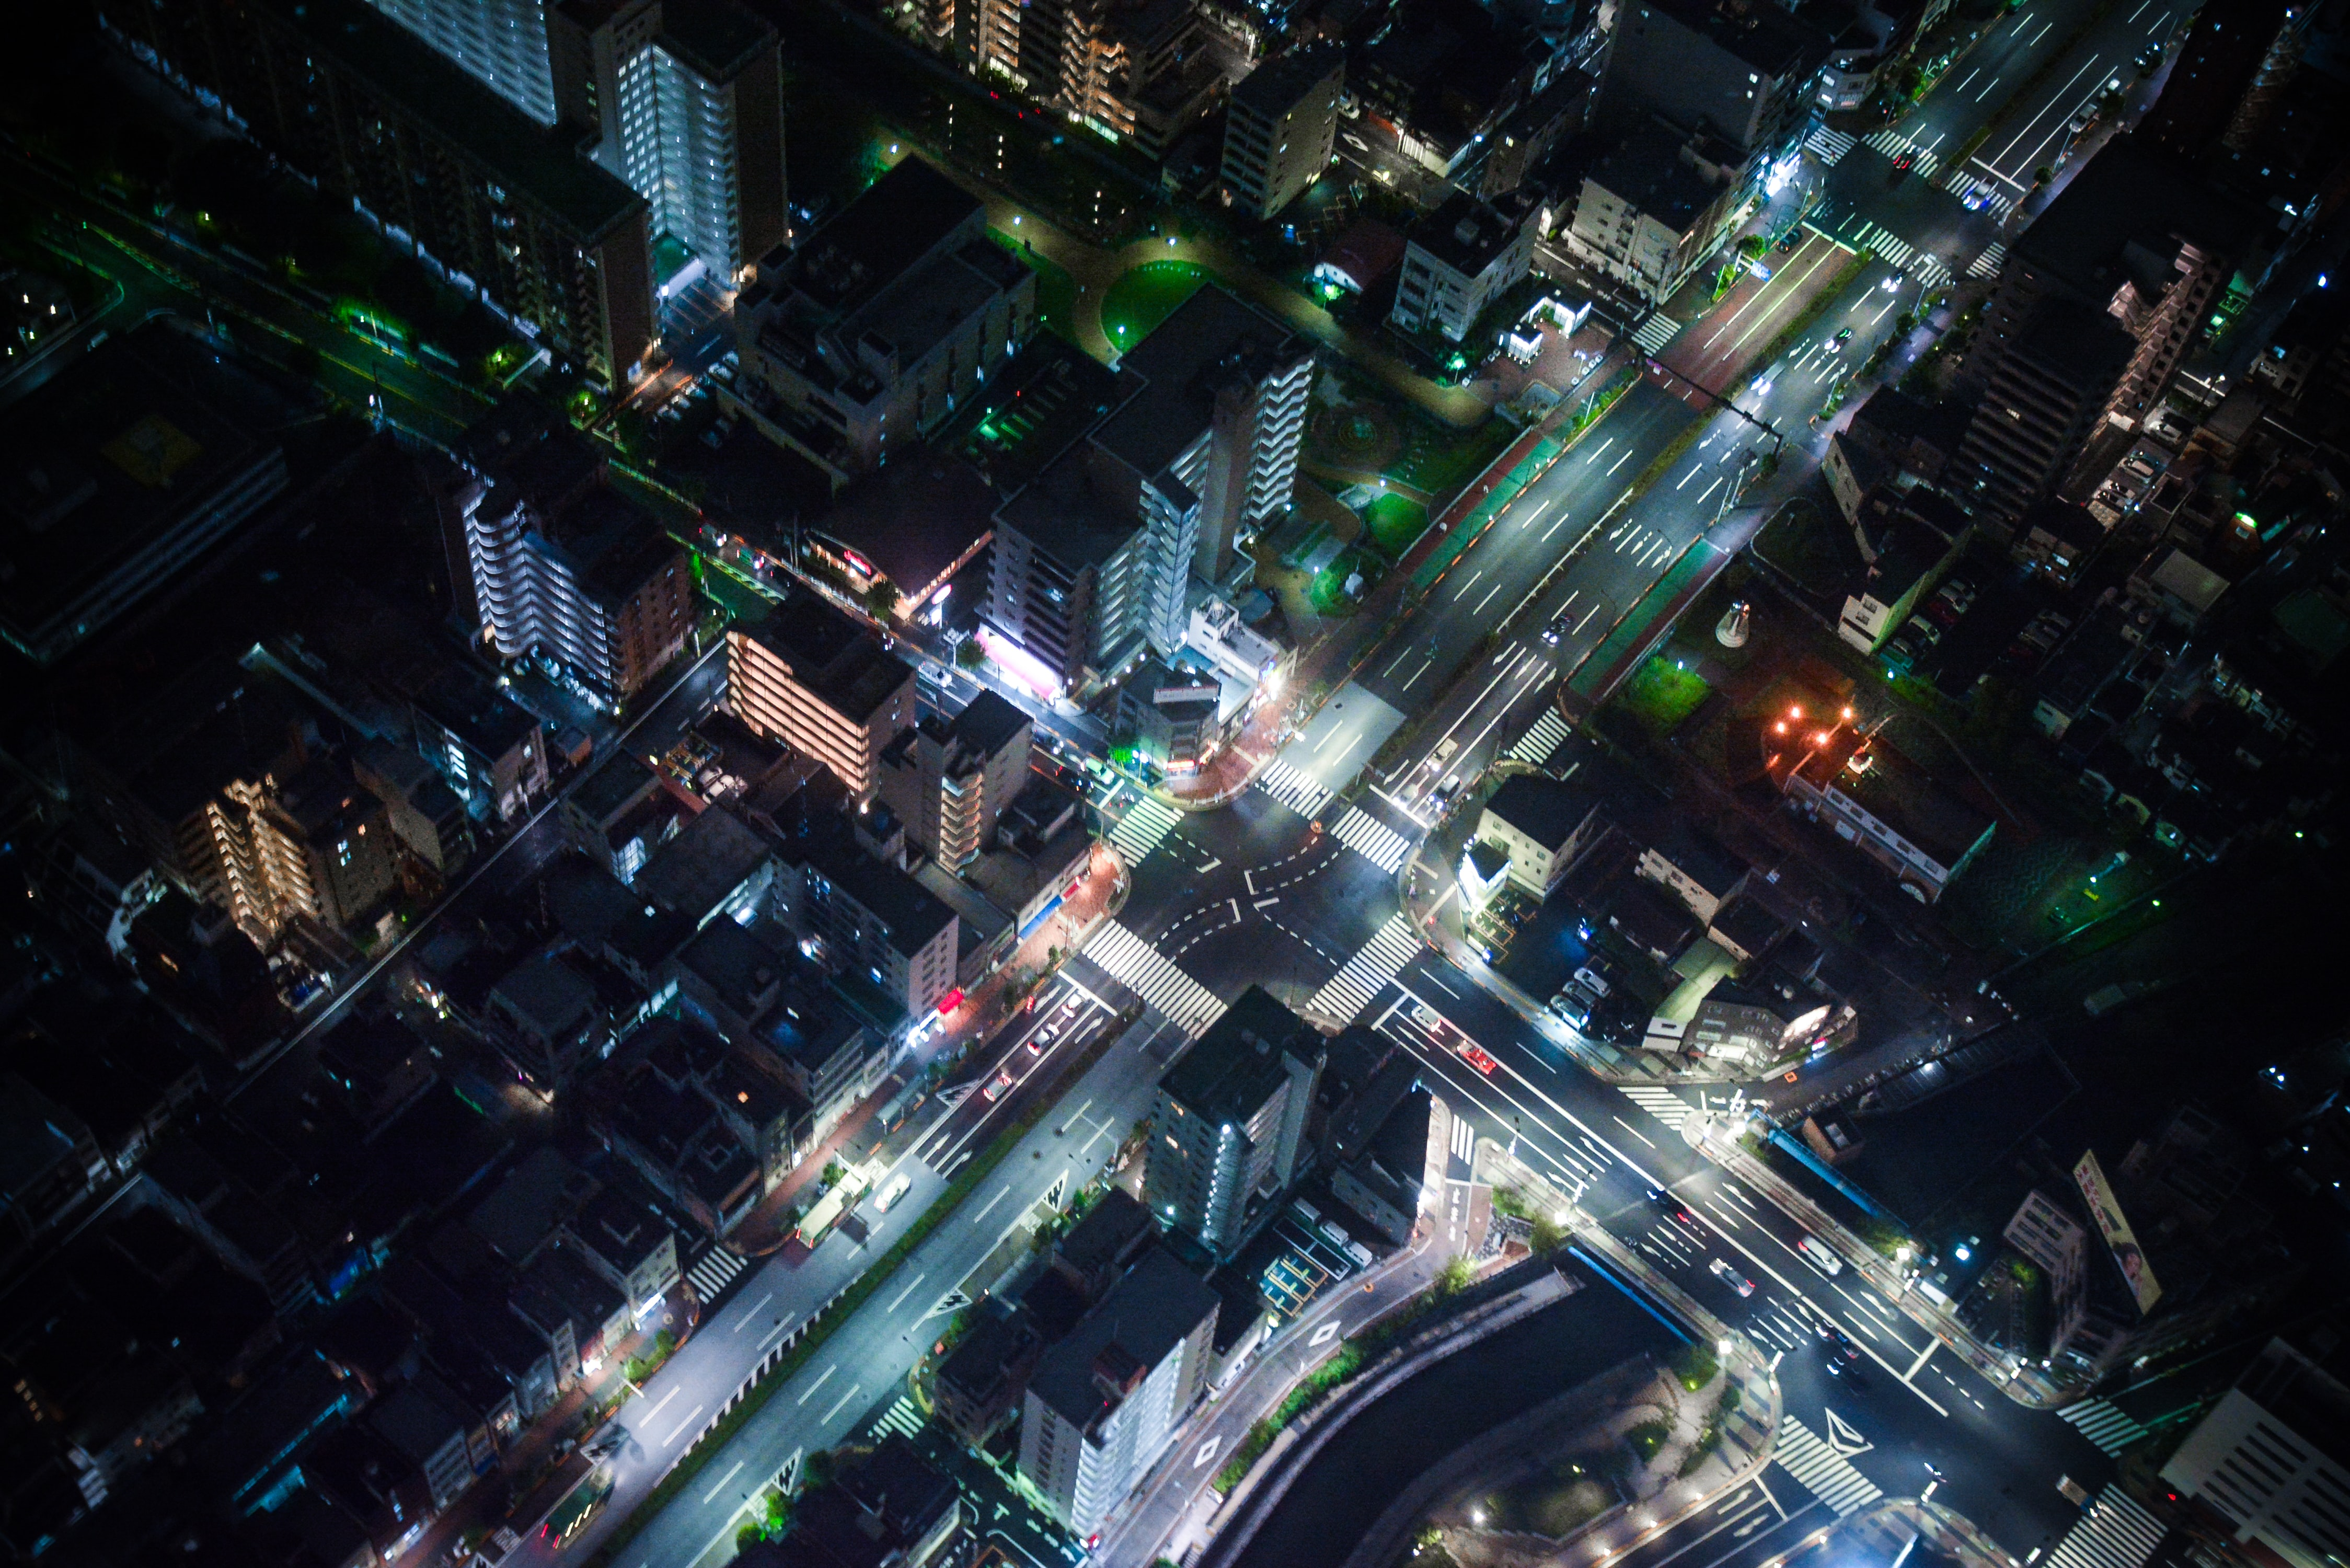 A drone shot of neon-soaked streets at night